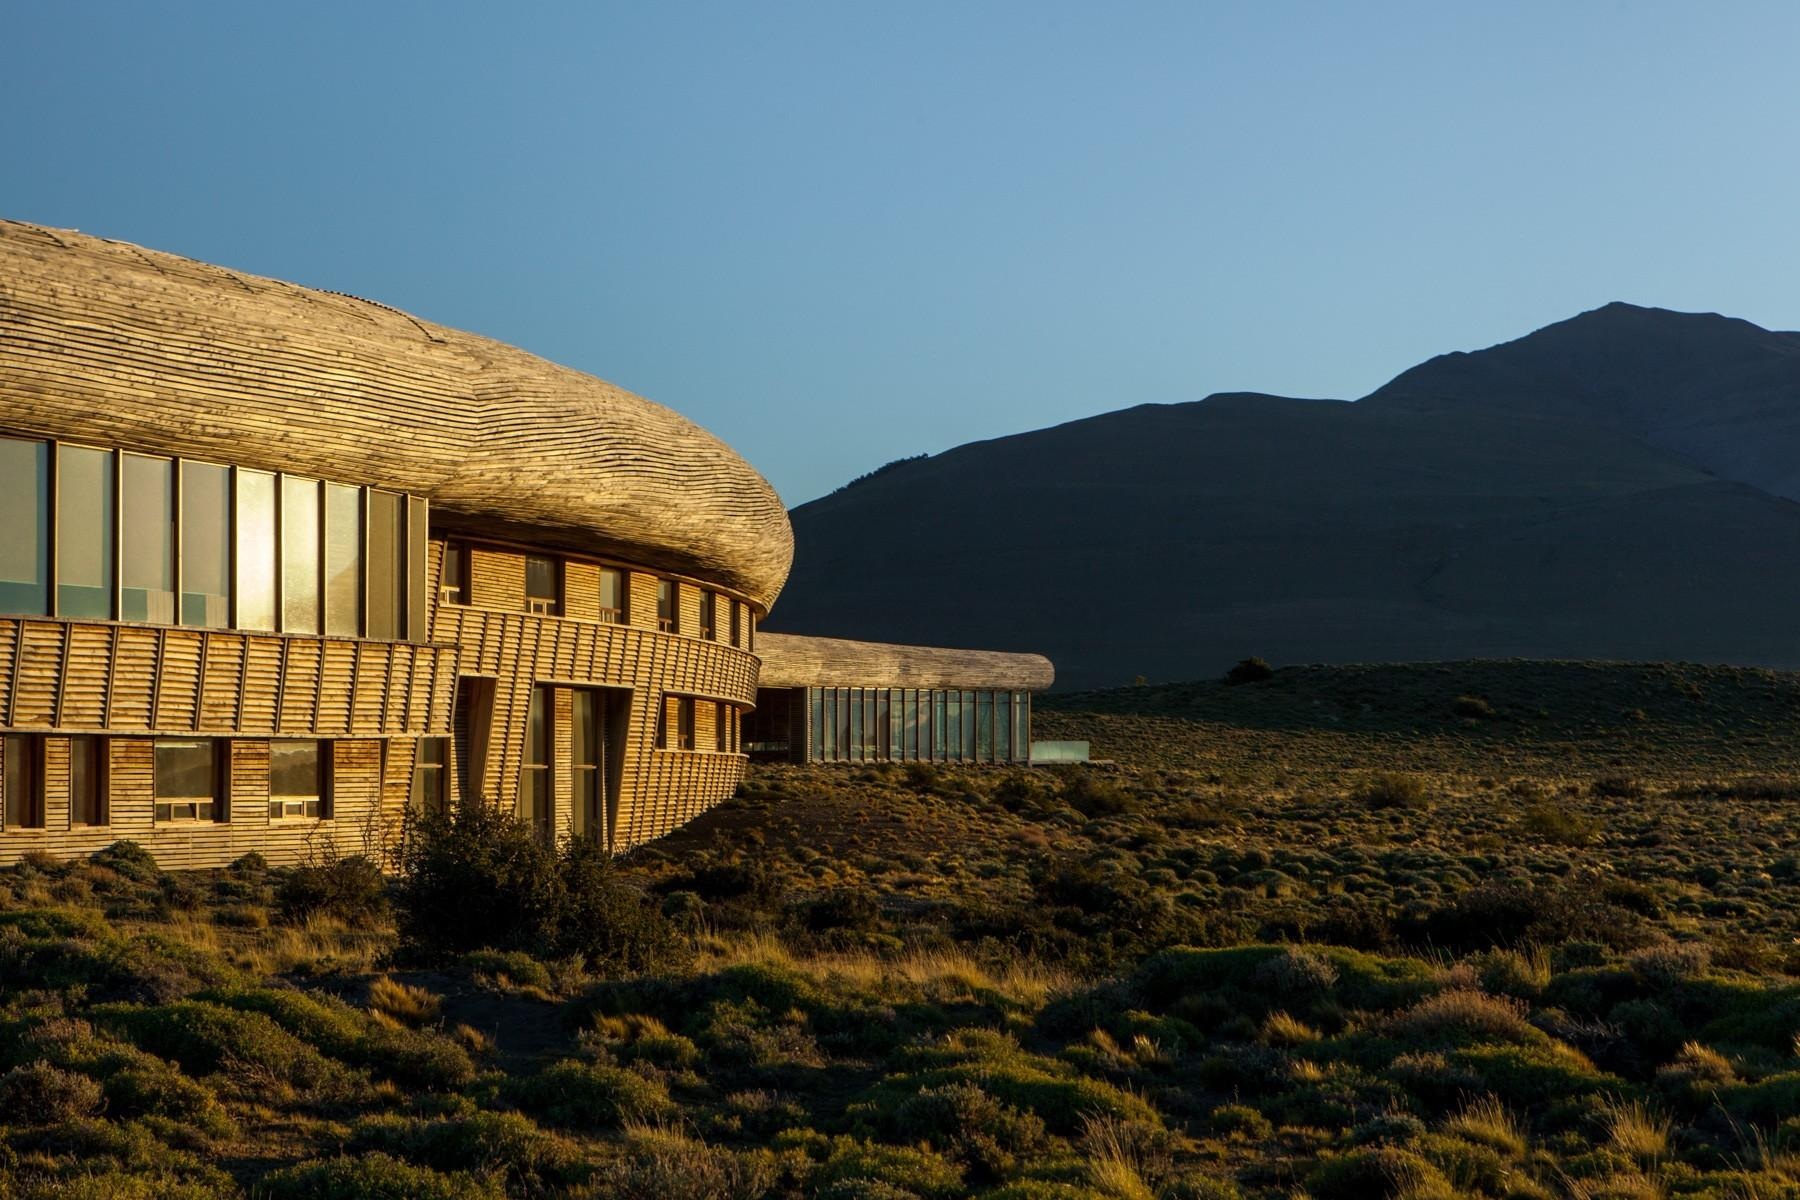 Tierra Patagonia Architectural Photography James Florio